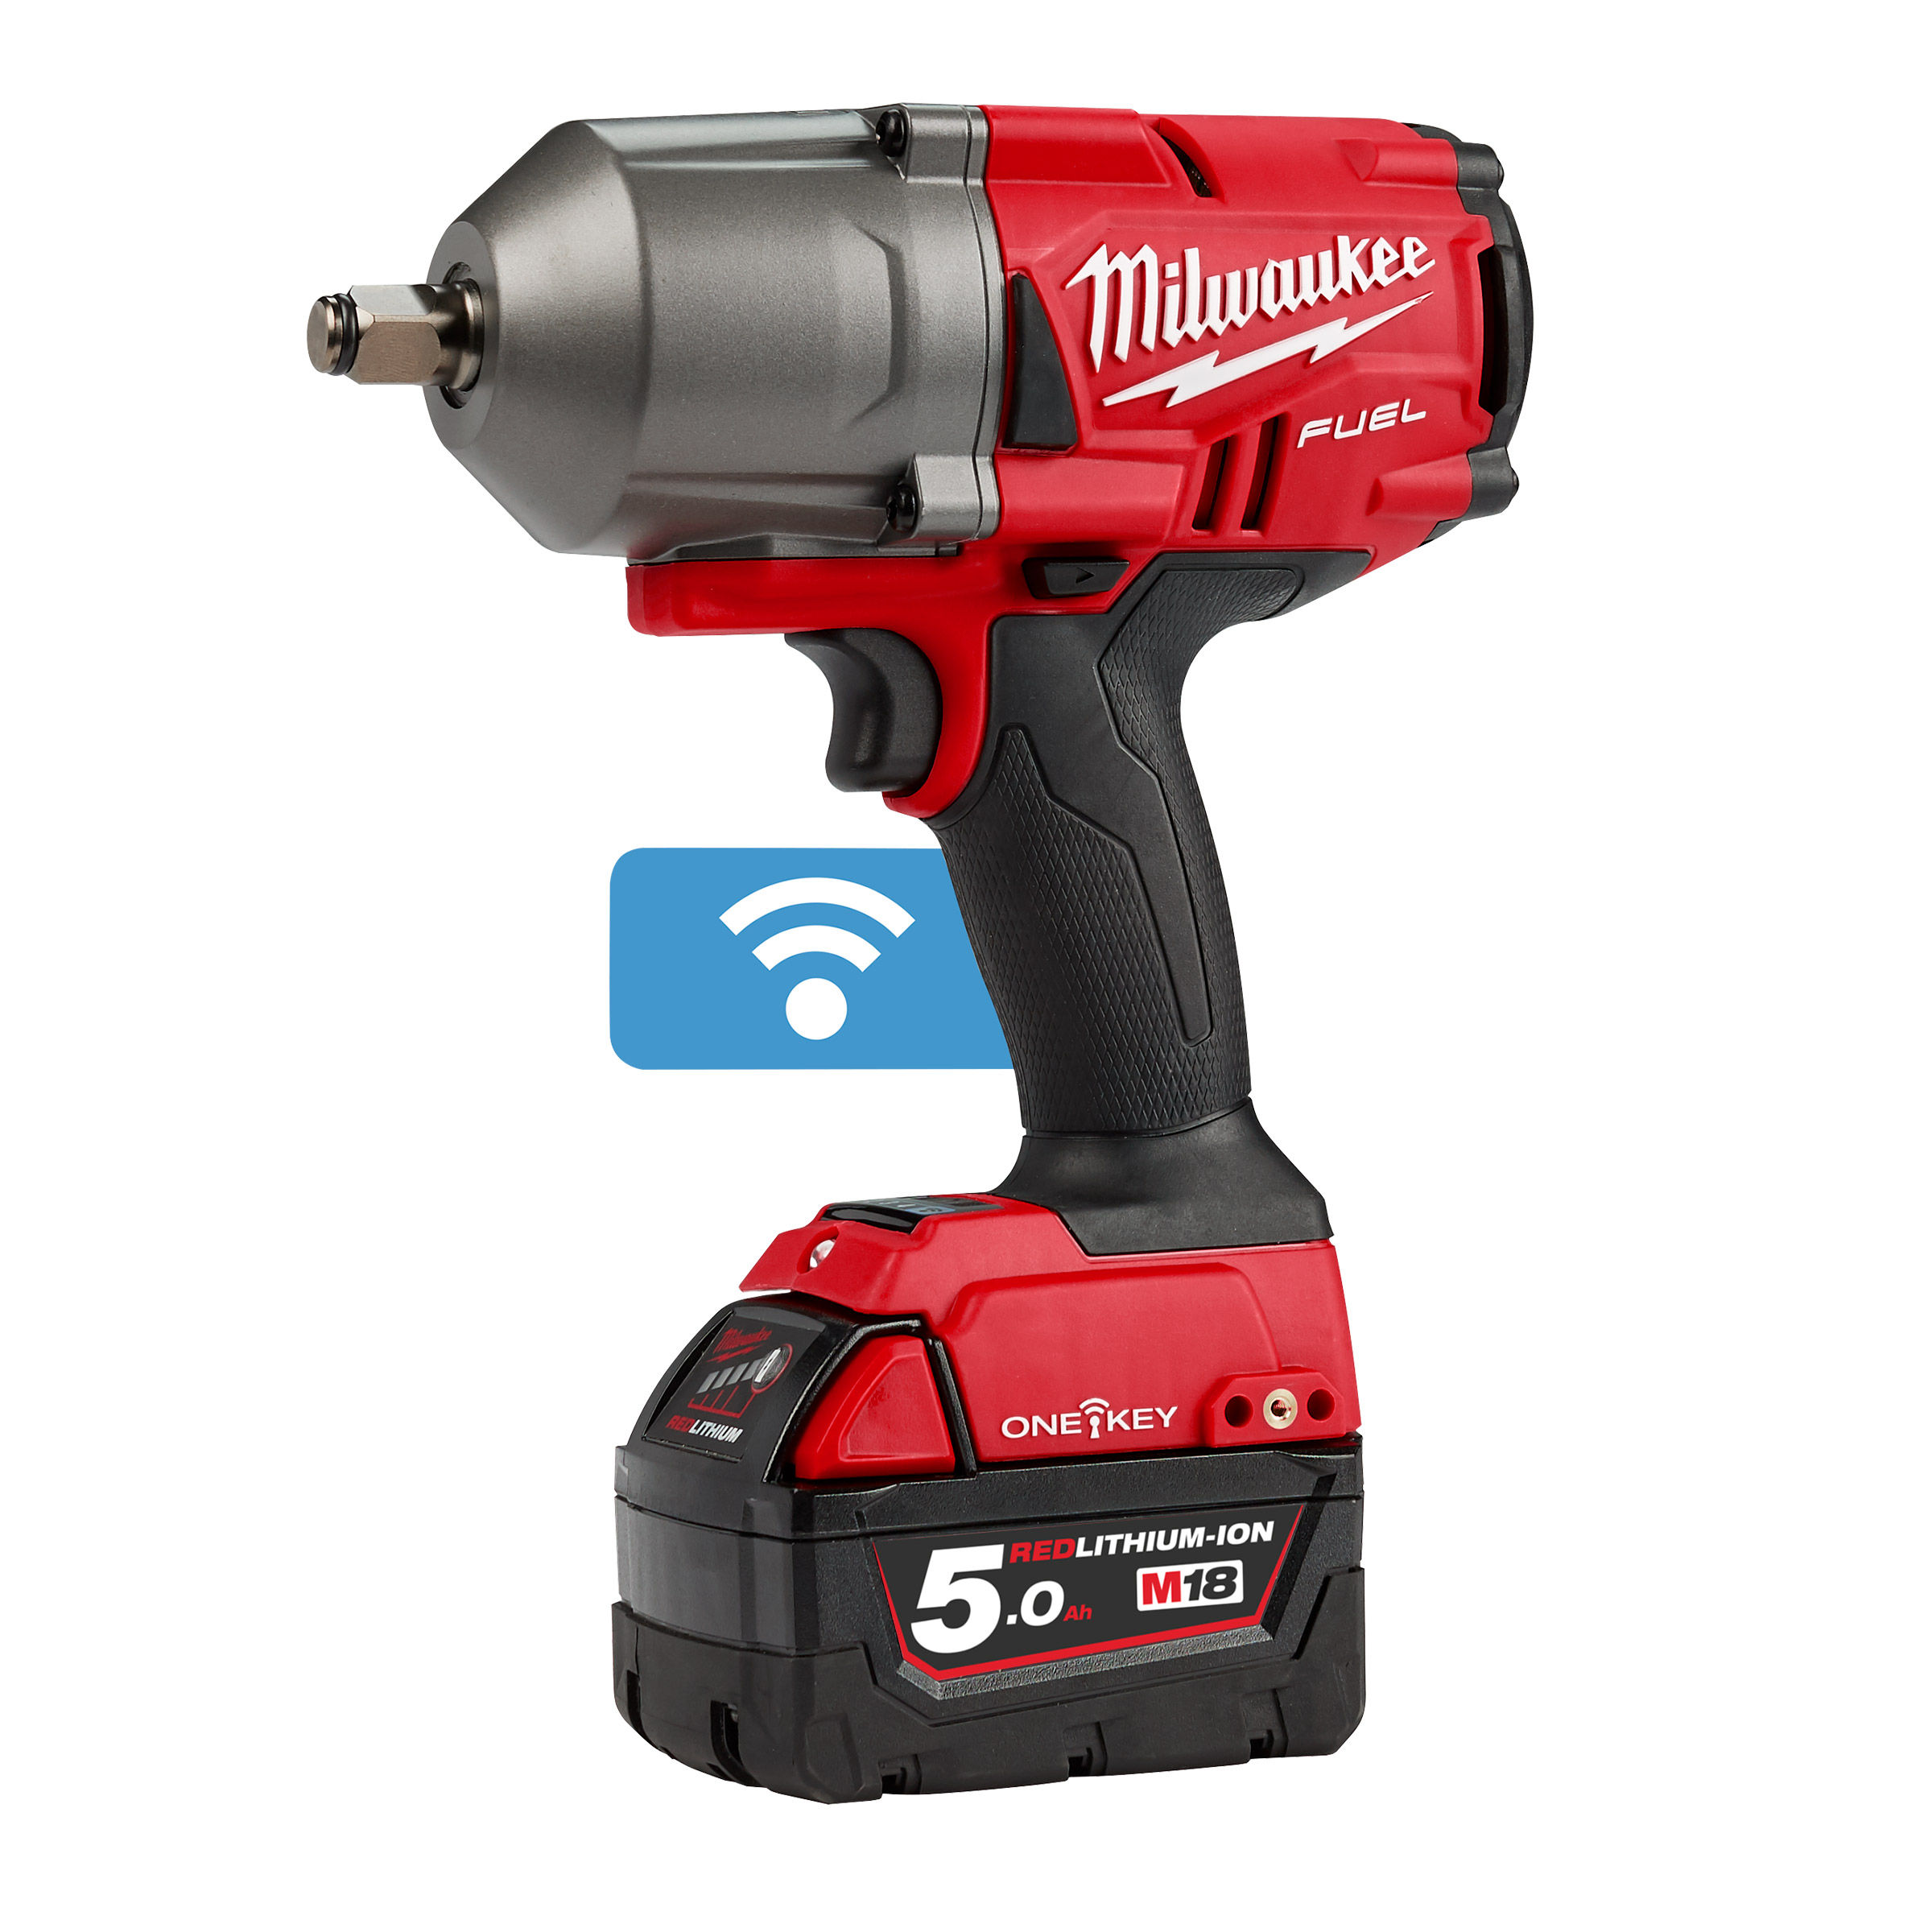 Milwaukee M18 Onefhiwf12 503x Fuel One Key Impact Wrench 1 2 Inch Drive